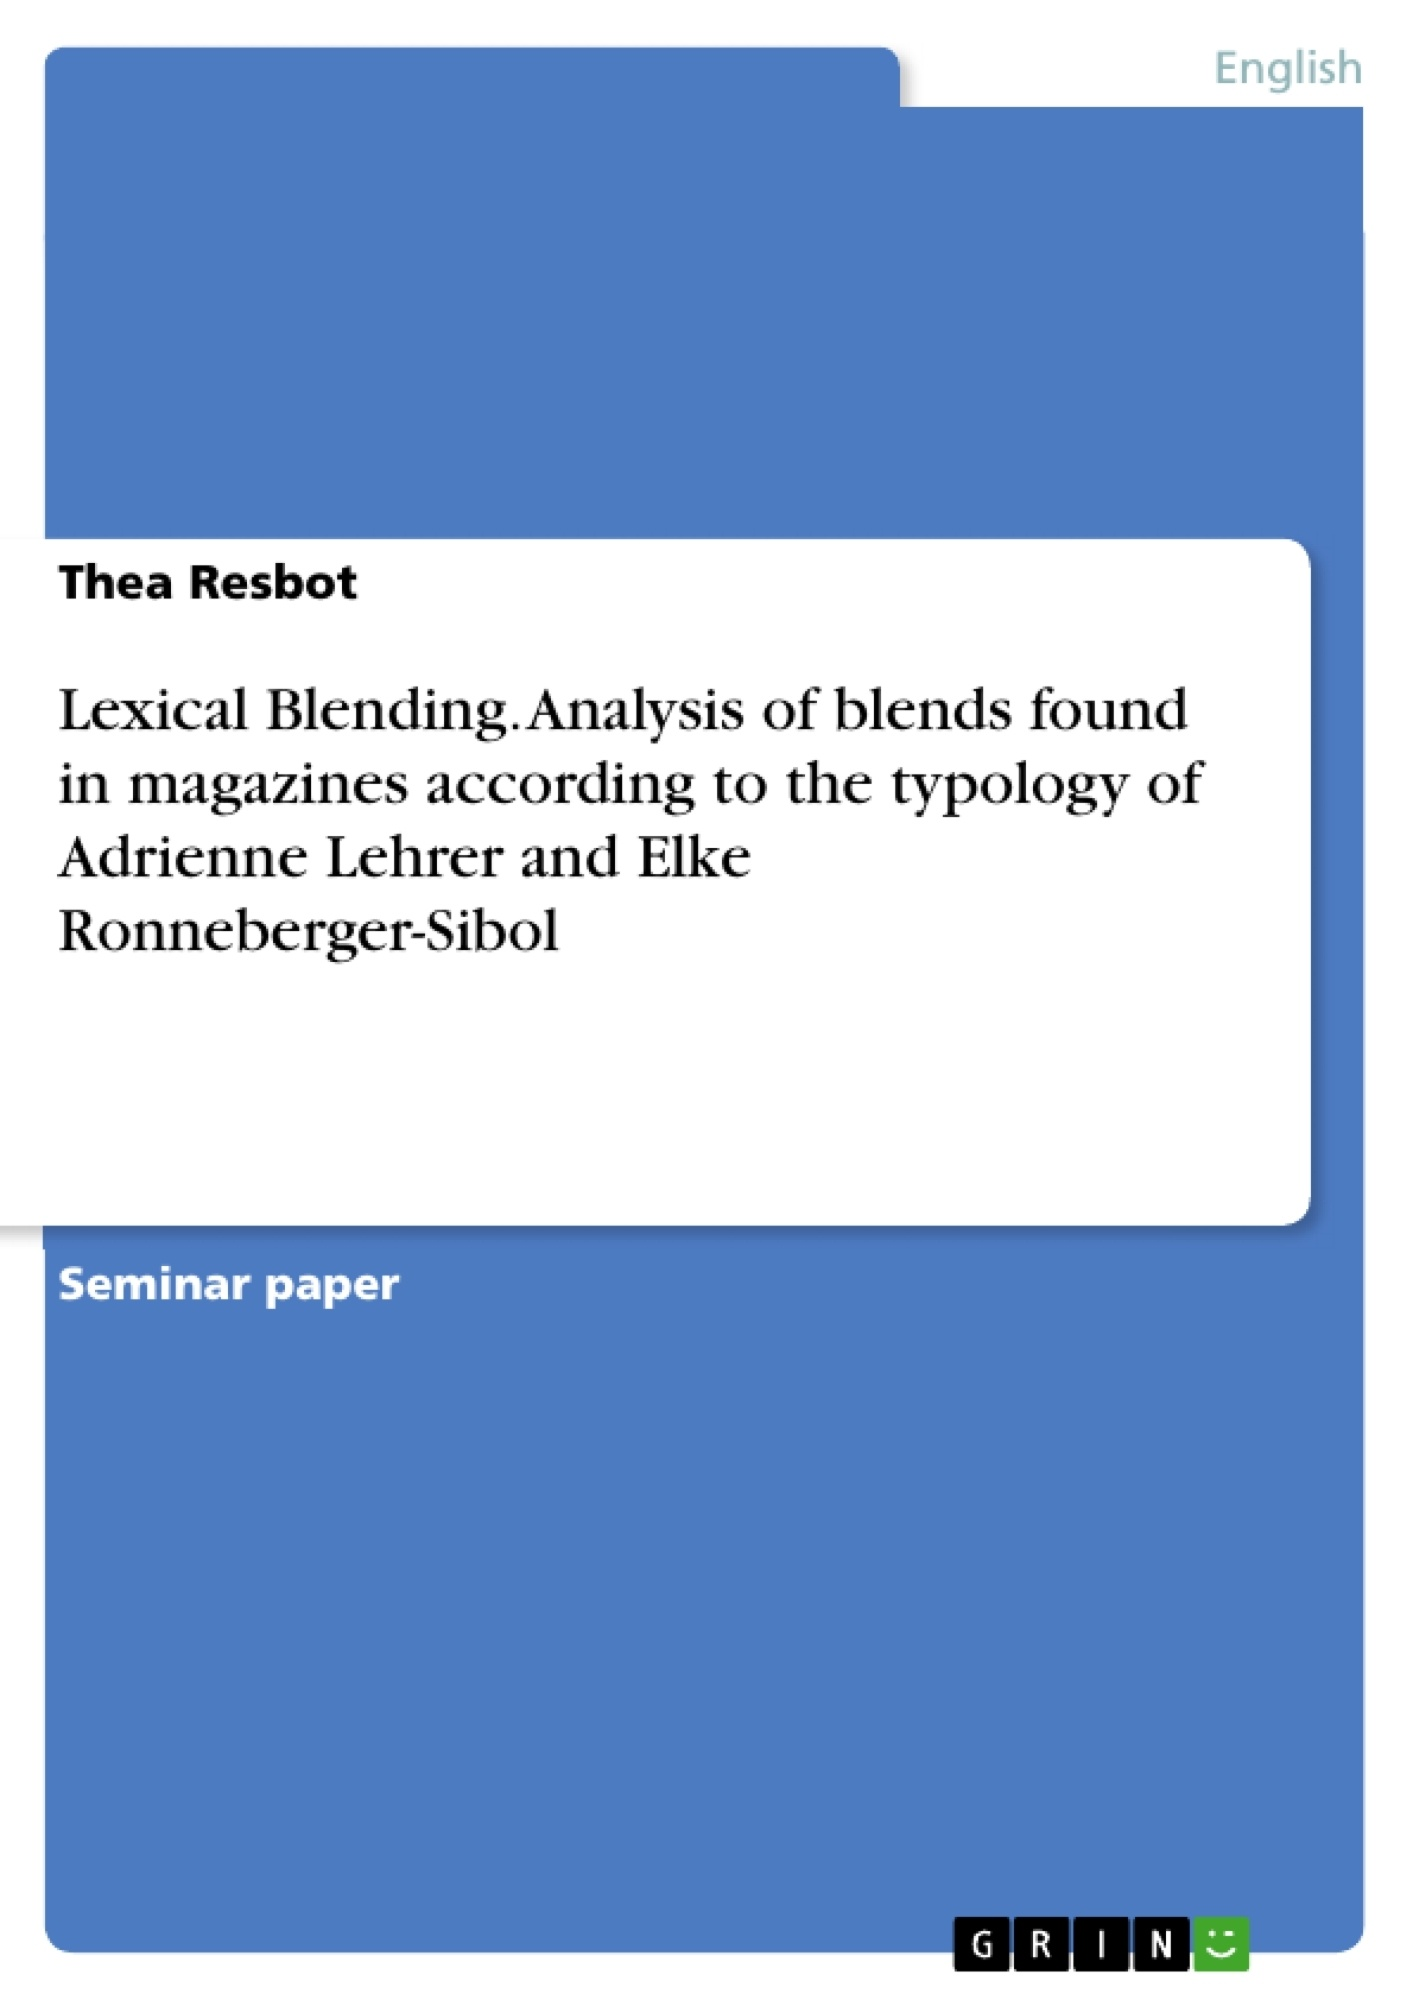 Title: Lexical Blending. Analysis of blends found in magazines according to the typology of Adrienne Lehrer and Elke Ronneberger-Sibol